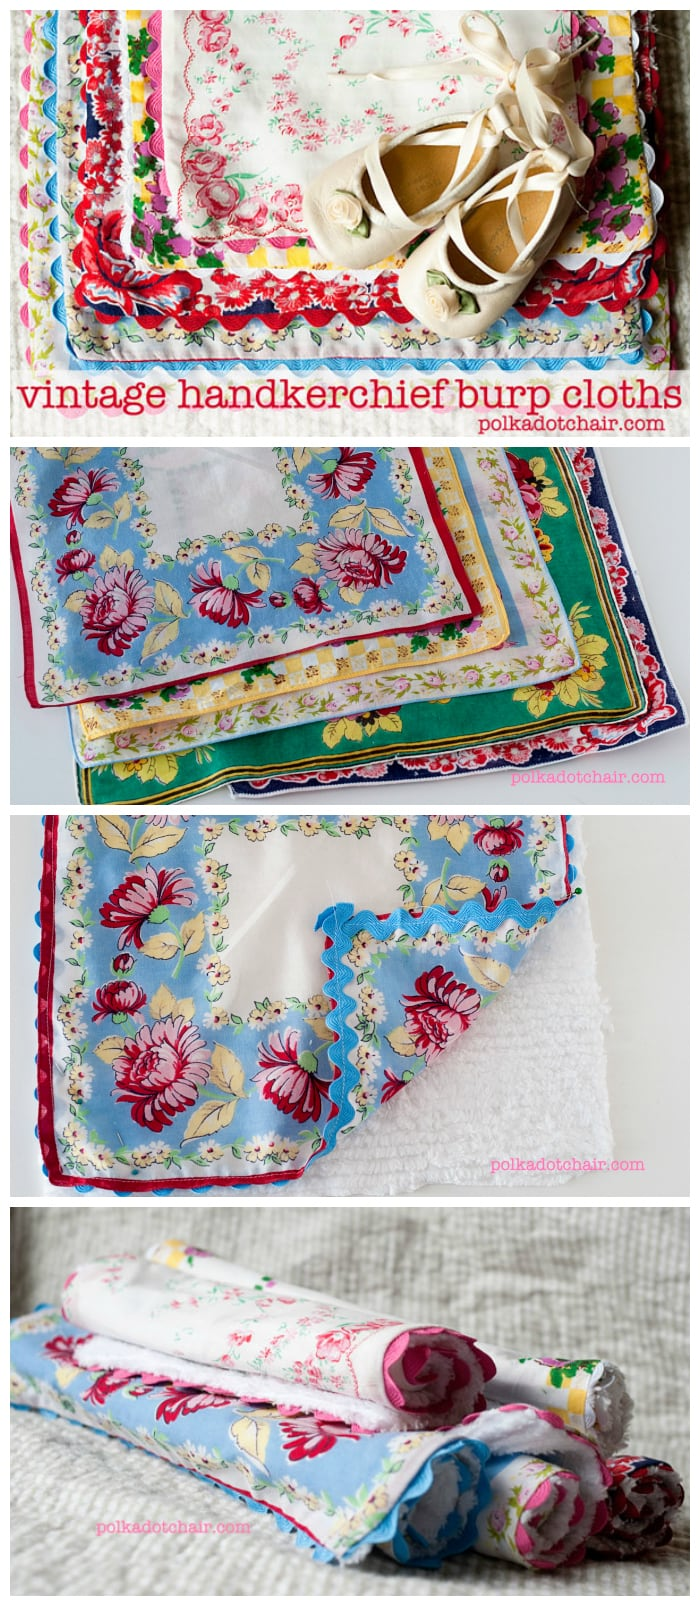 Burp Cloths made from Vintage Handkerchiefs